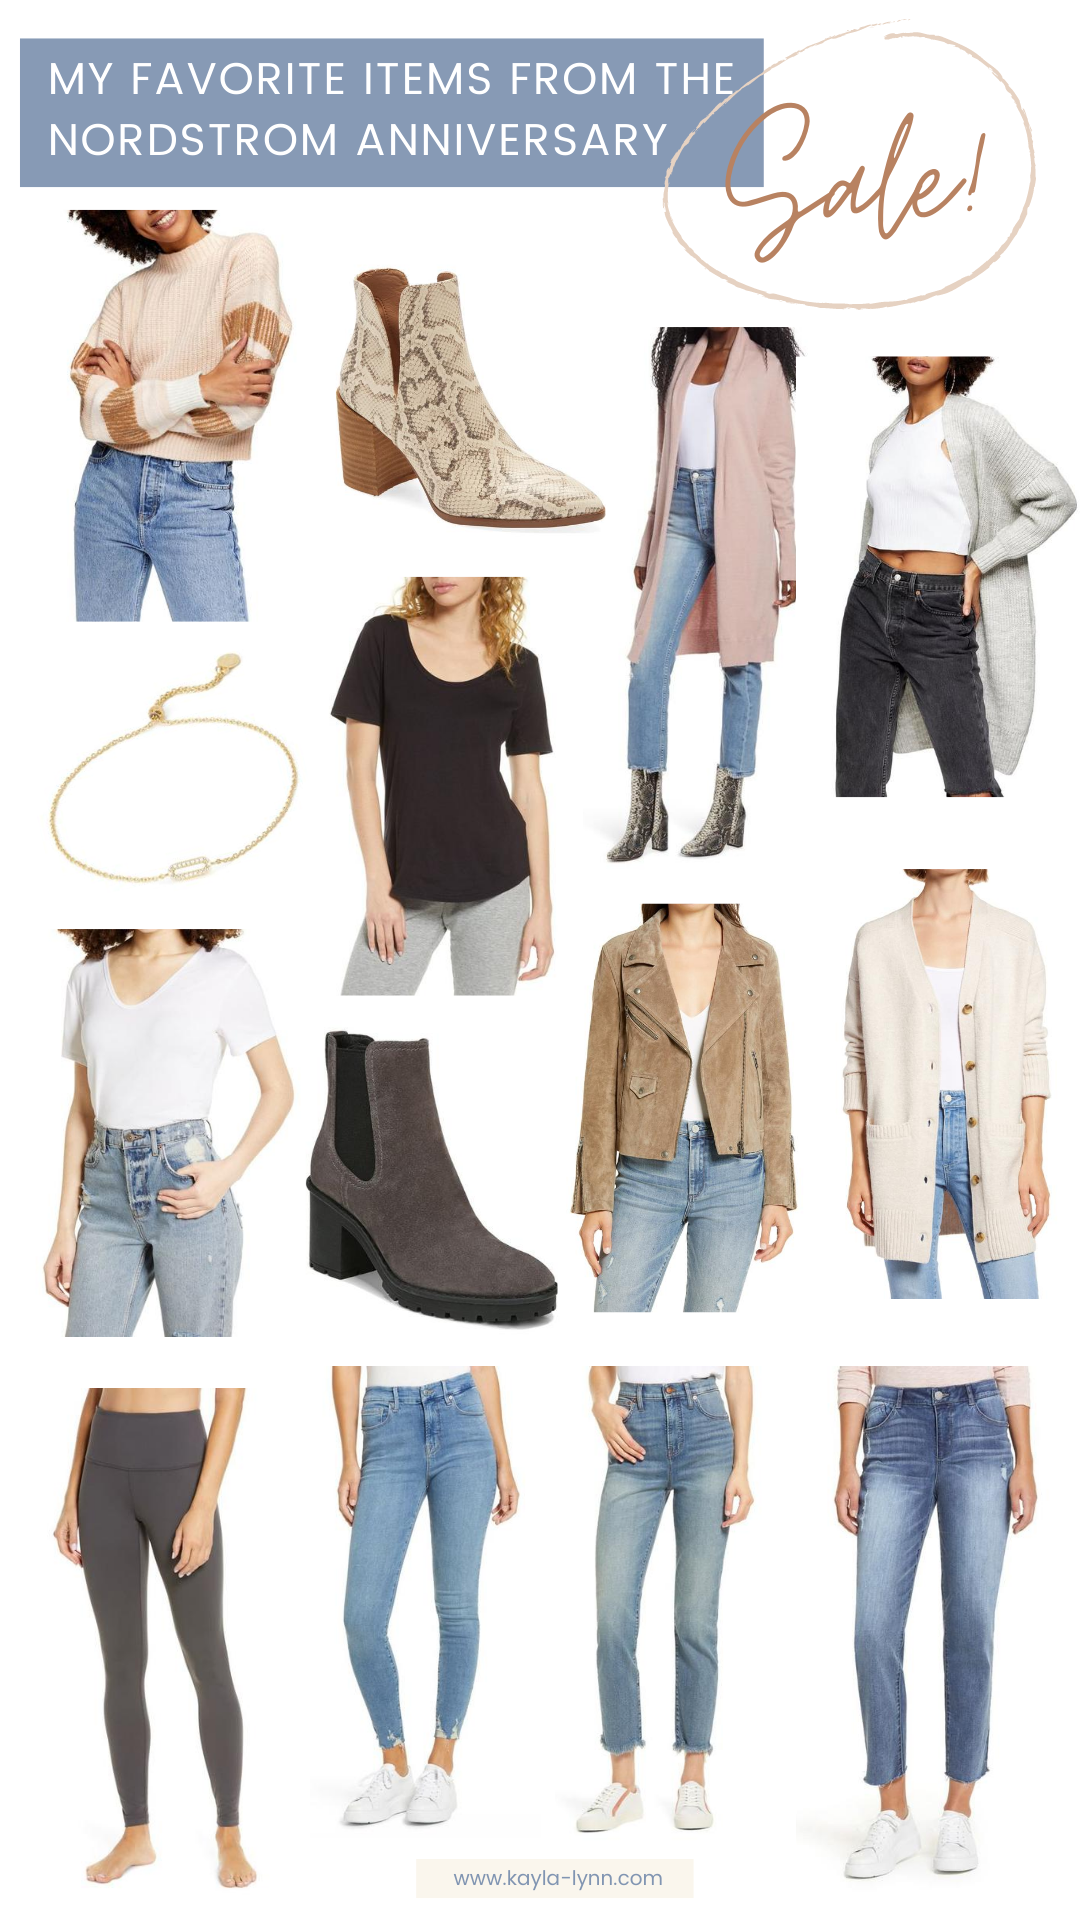 My favorite items from the 2020 Nordstrom Anniversary Sale